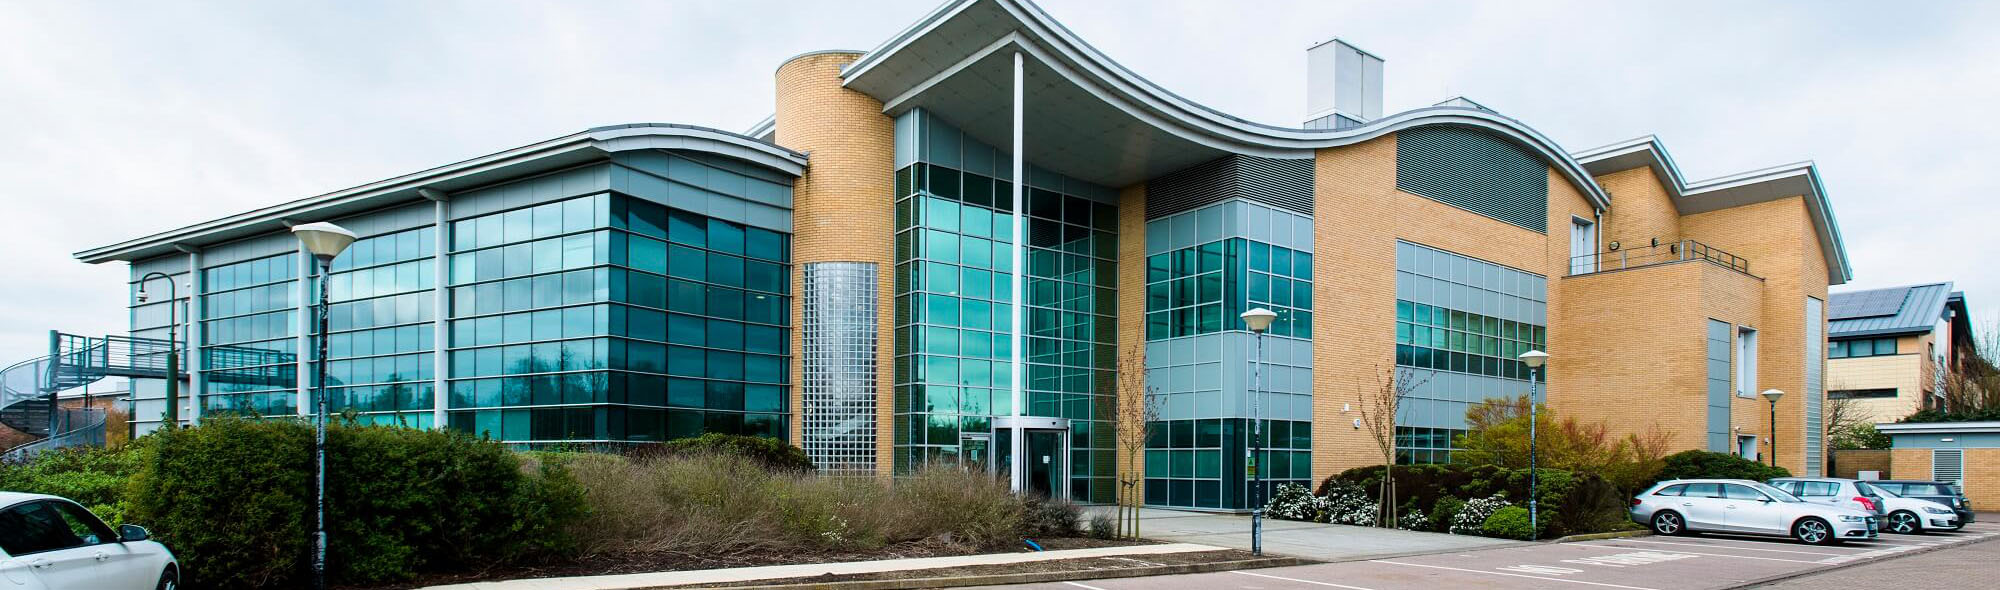 418 Cambridge Science Park